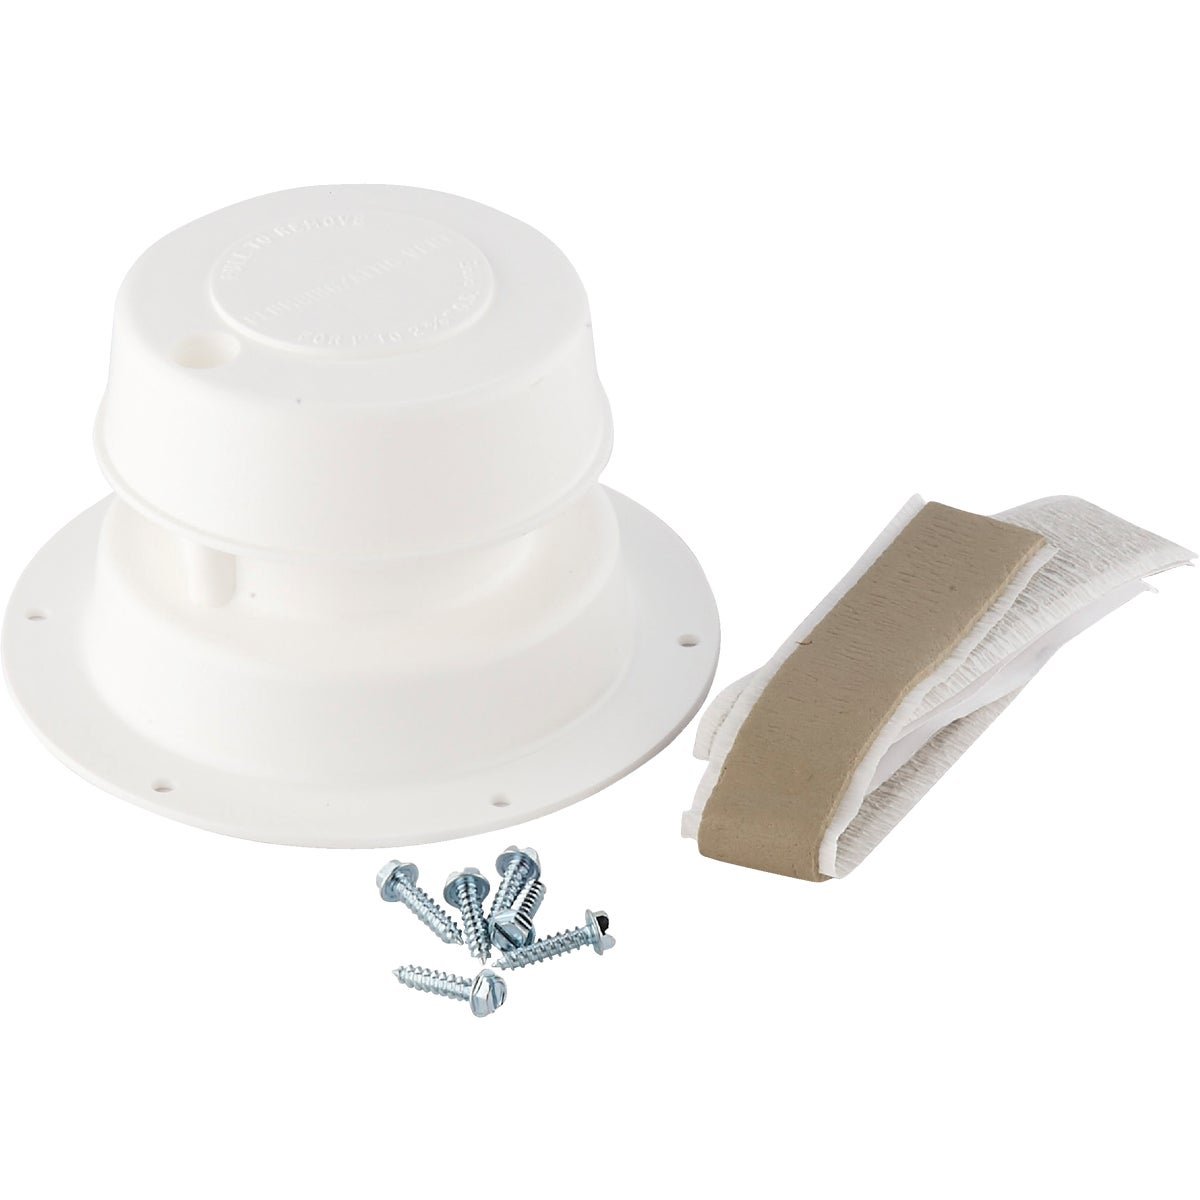 "Item 220418, Replace damaged plumbing vents with quality original factory replacement vents. Kit fits 1"" to 2-3/8"" O.D."